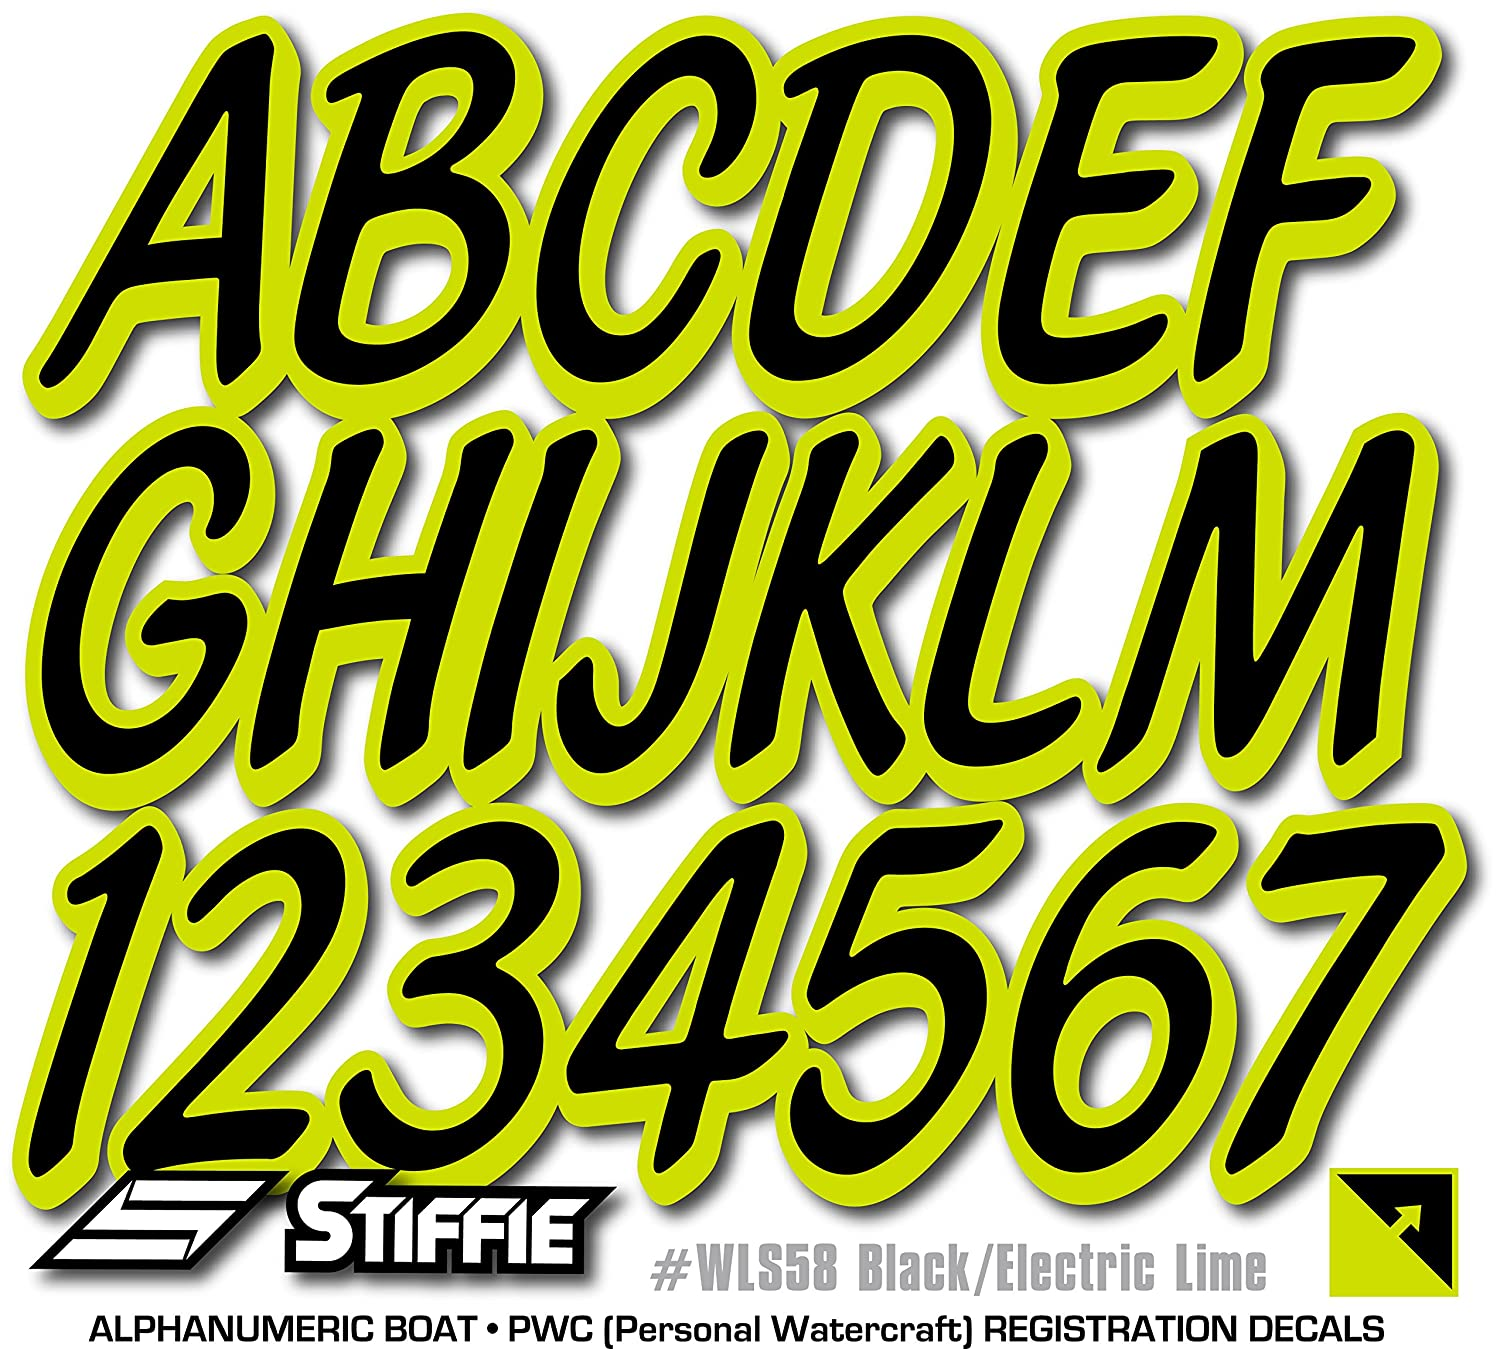 Stiffie Whipline Solid Black//Electric Lime 3 Alpha-Numeric Registration Identification Numbers Stickers Decals for Boats /& Personal Watercraft